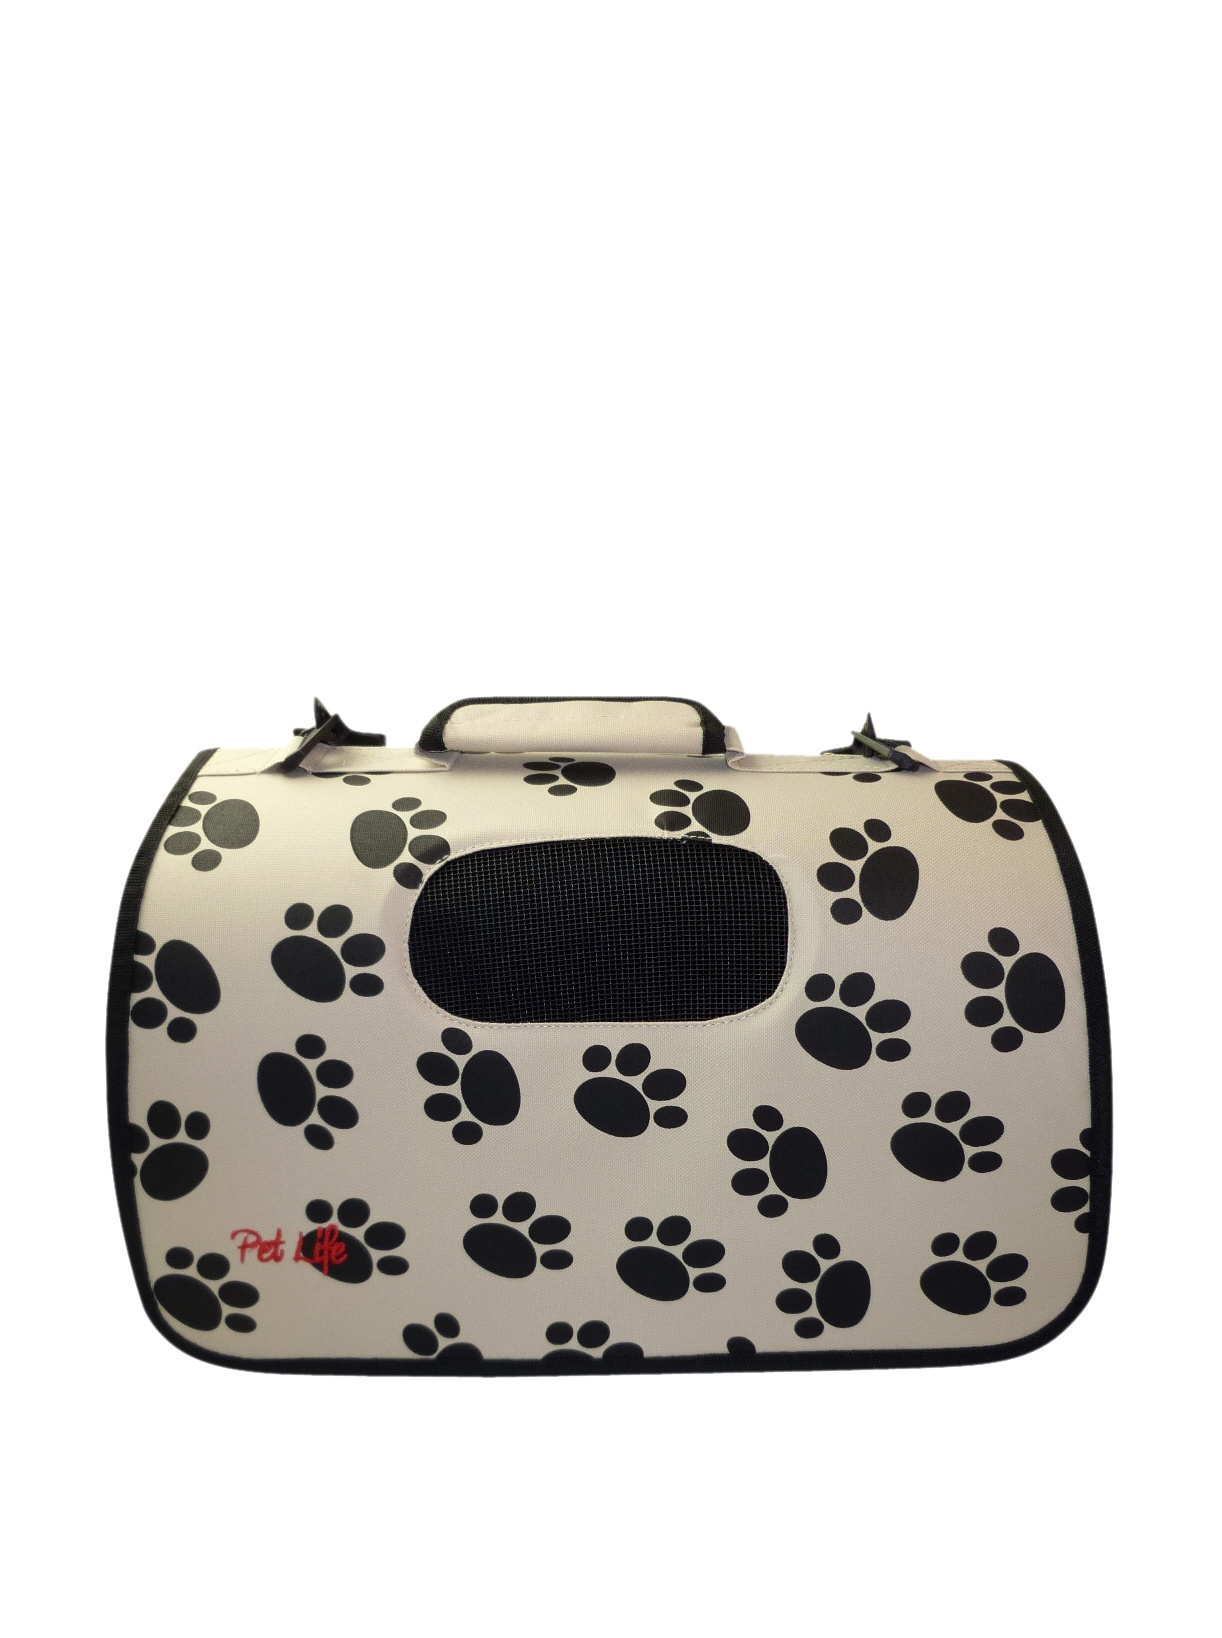 Pet Life Zippered Sporty Mesh Carrier (Paw Print)